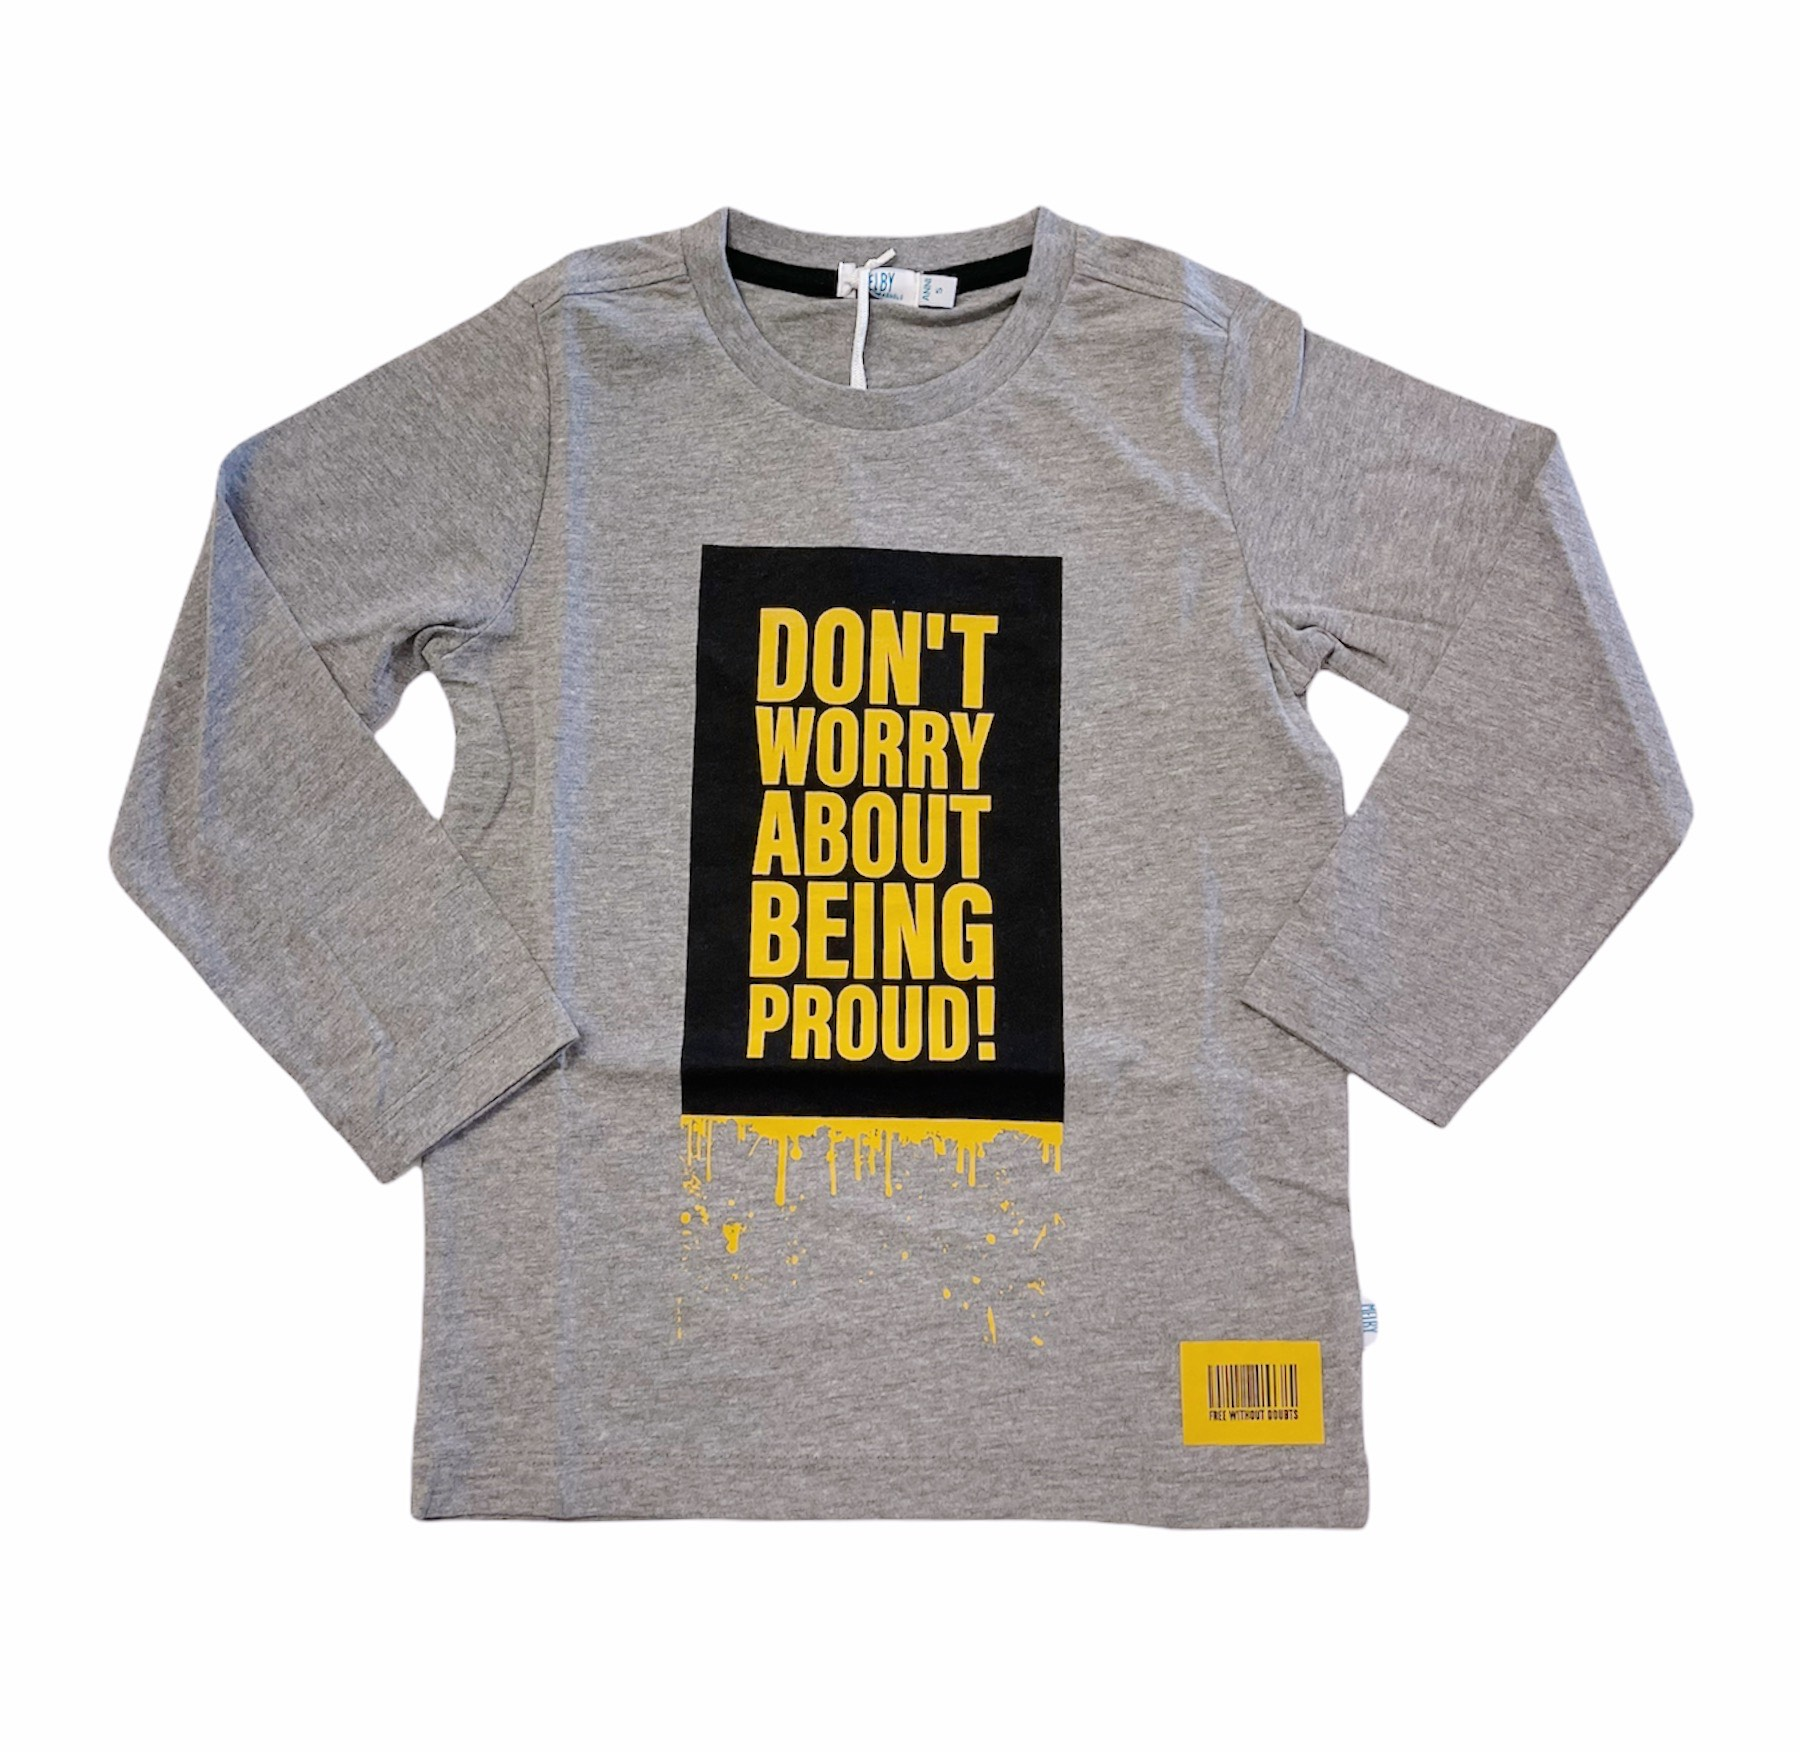 T-SHIRT MELBY DON'T WORRY 1